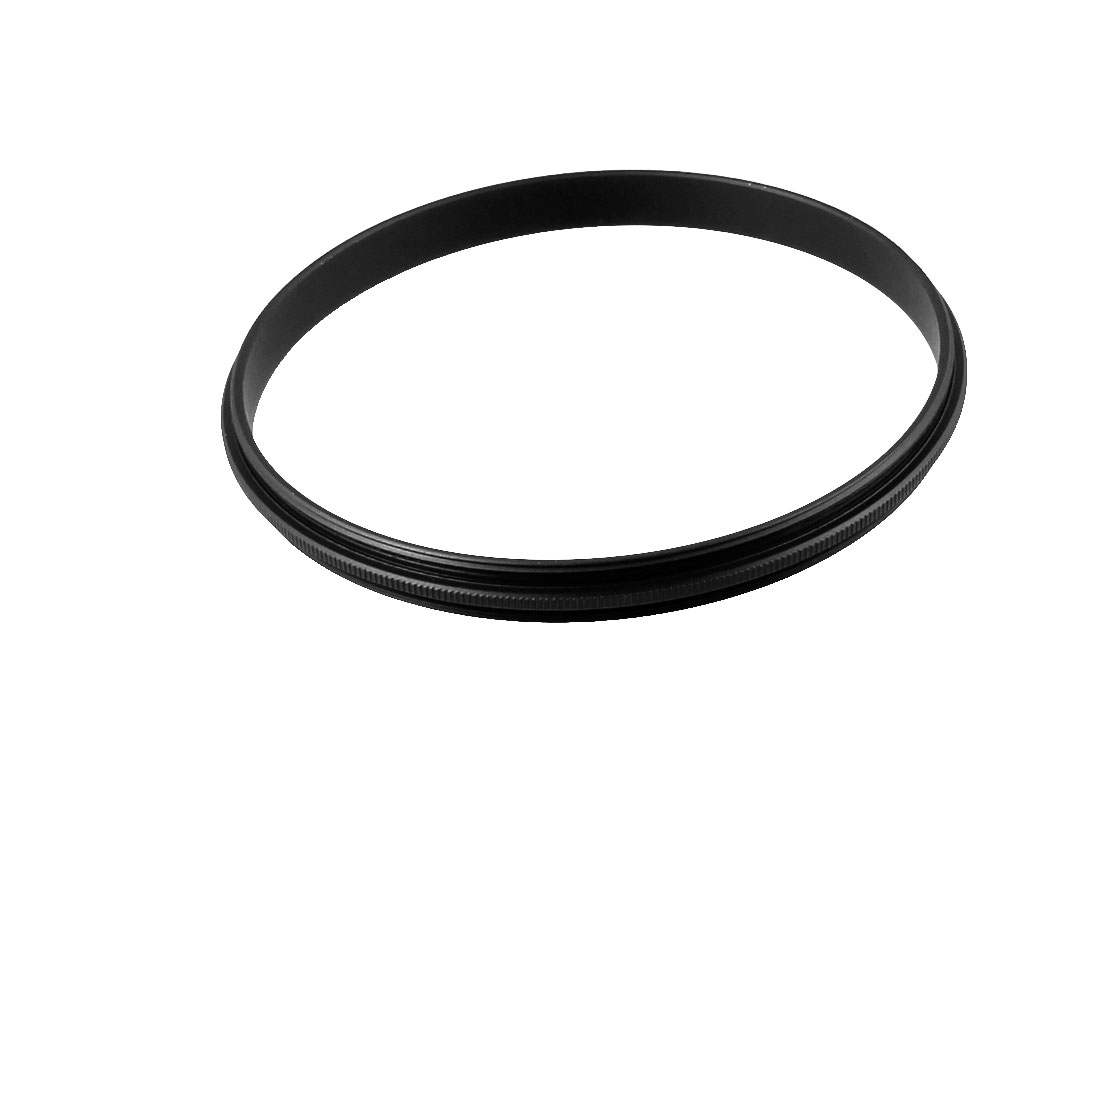 72mm-72mm 72mm to 72mm Male to Male Step Ring Adapter Black for Camera